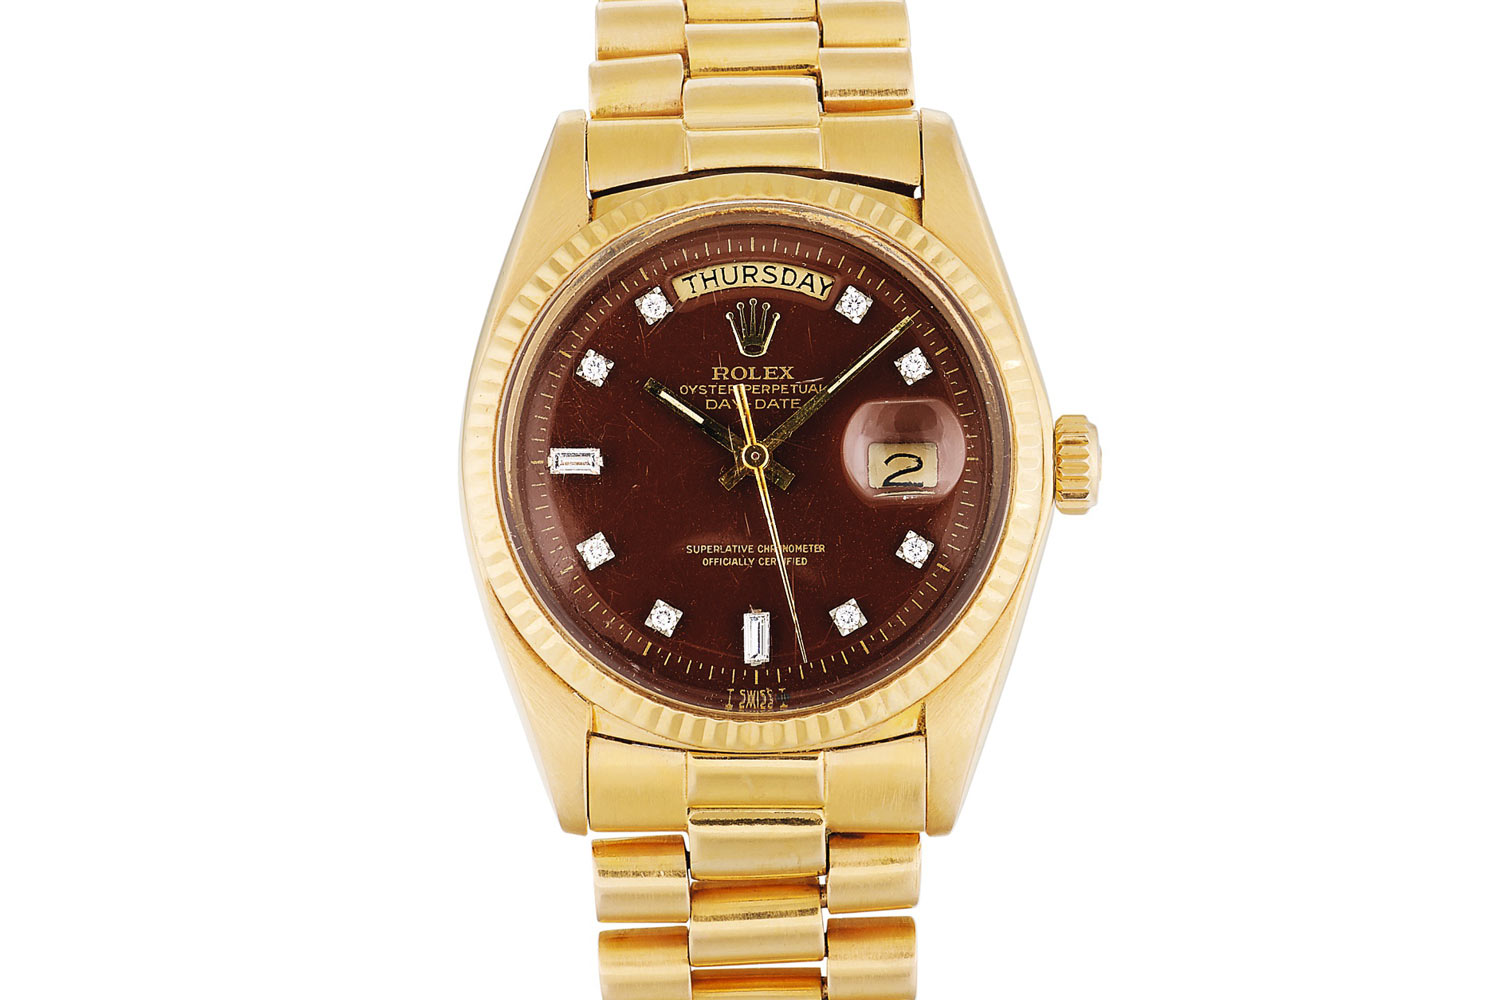 Lot 387: Rolex 'Stella' Day-Date Ref. 1803. Pink gold and diamond-set wristwatch with day, date and burgundy Stella dial, circa 1973